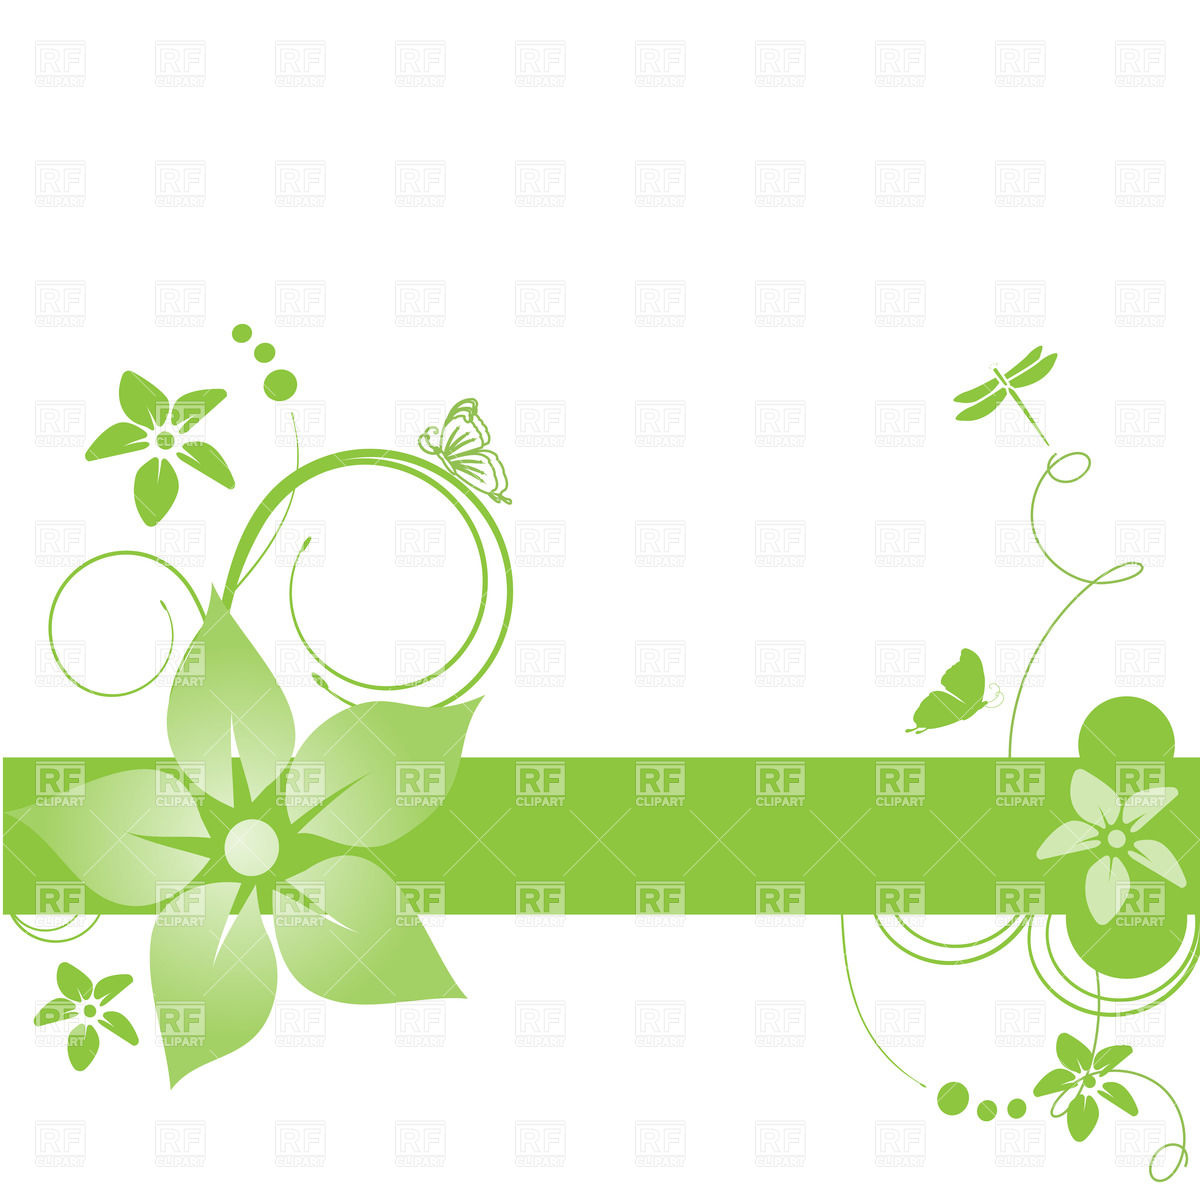 Abstract green banner with simple flowers and curls Vector Image.